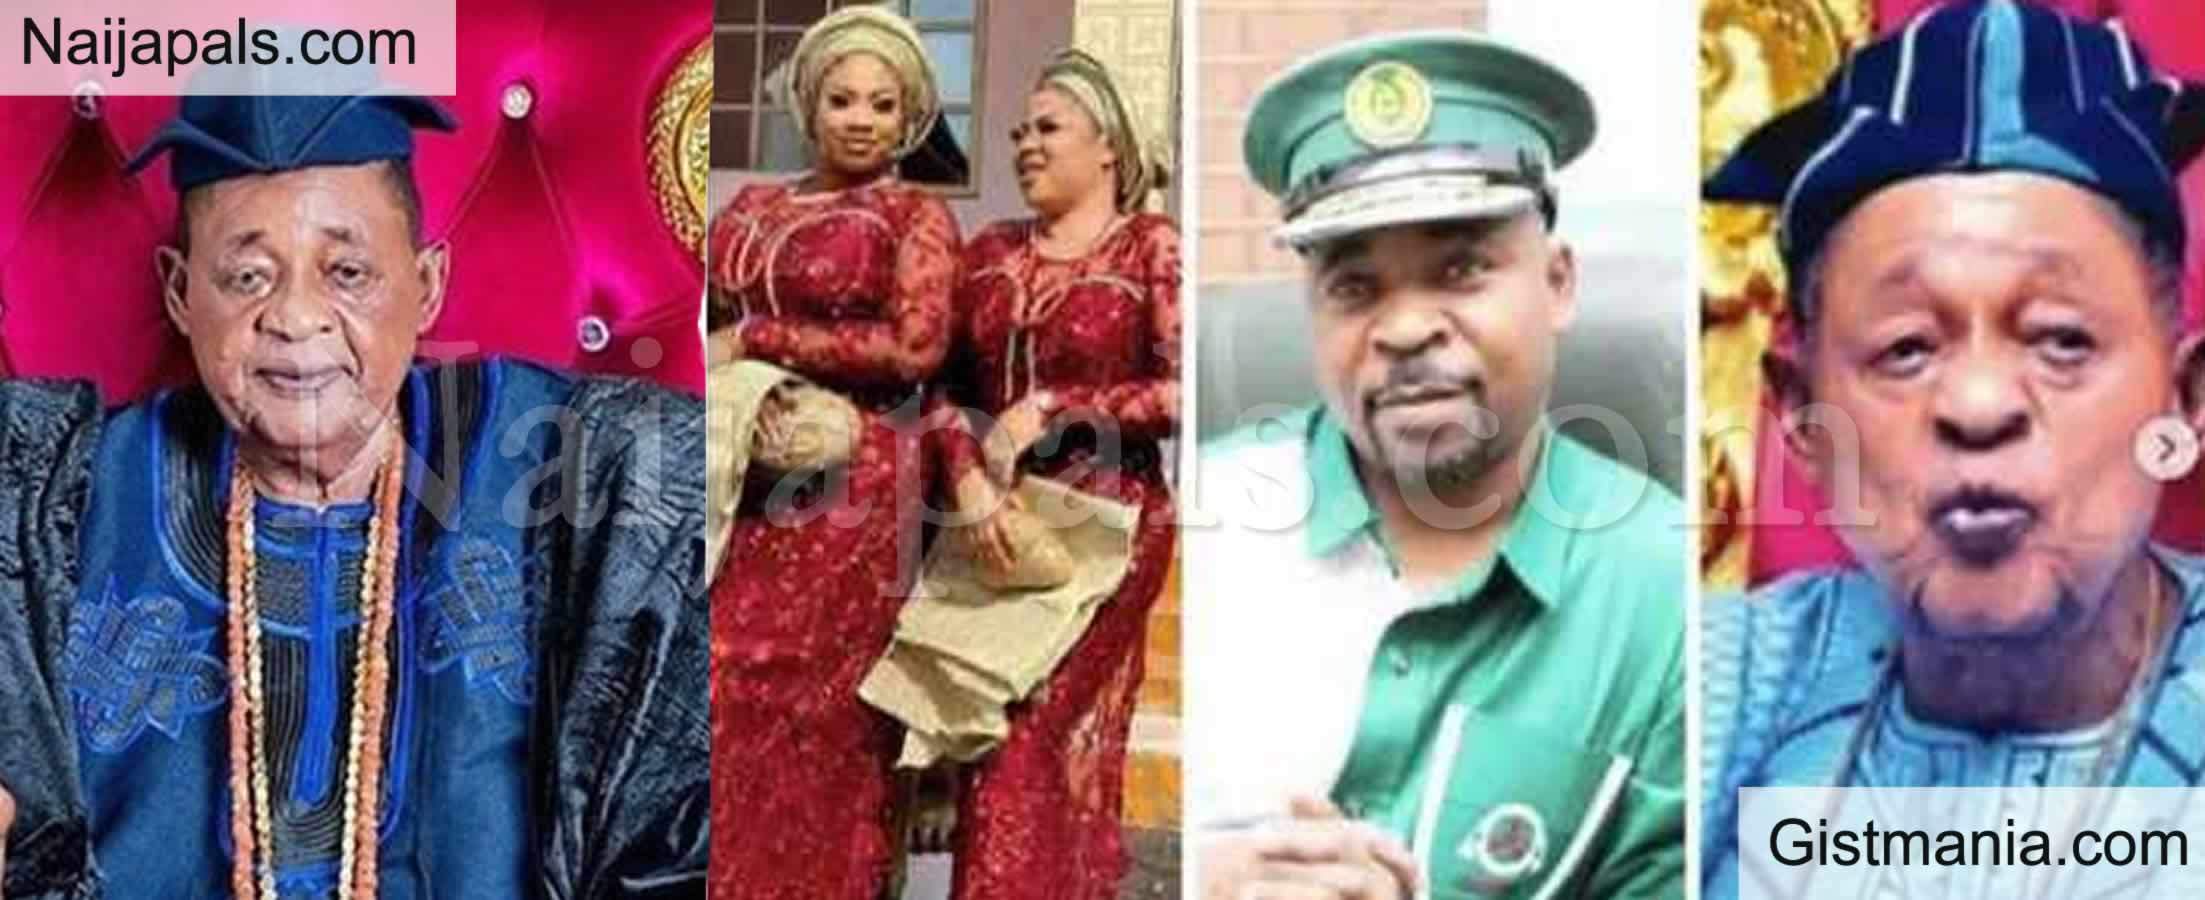 <img alt='.' class='lazyload' data-src='https://img.gistmania.com/emot/comment.gif' /> <b>Alaafin of Oyo, Oba Adeyemi Reportedly Dumps Two of His Queens, Set to Marry New Wives</b>